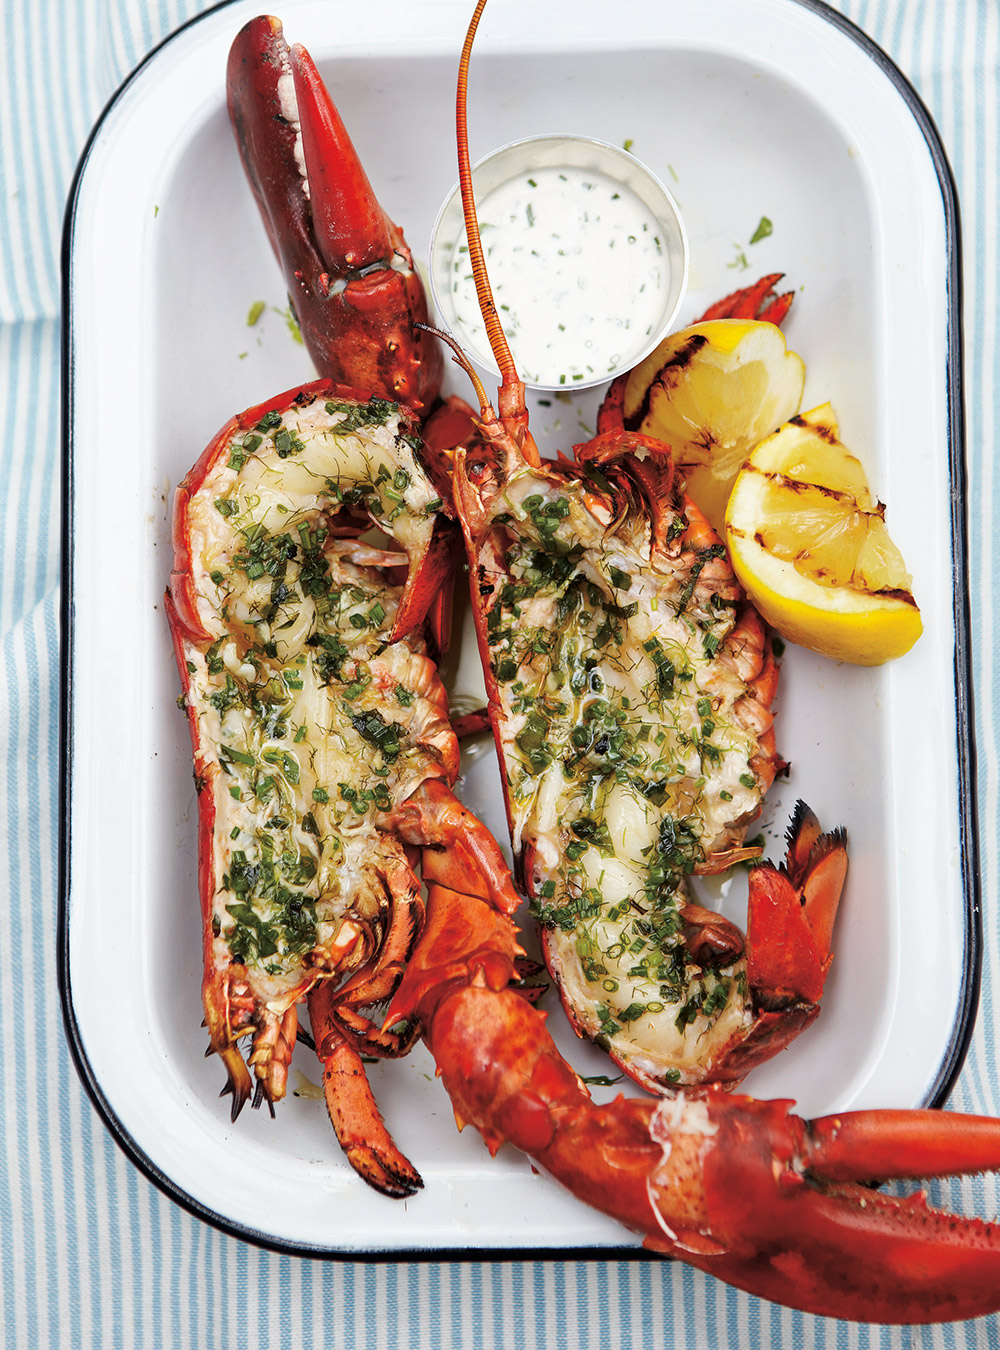 Homard grill aux herbes ricardo - Quel accompagnement avec un barbecue ...